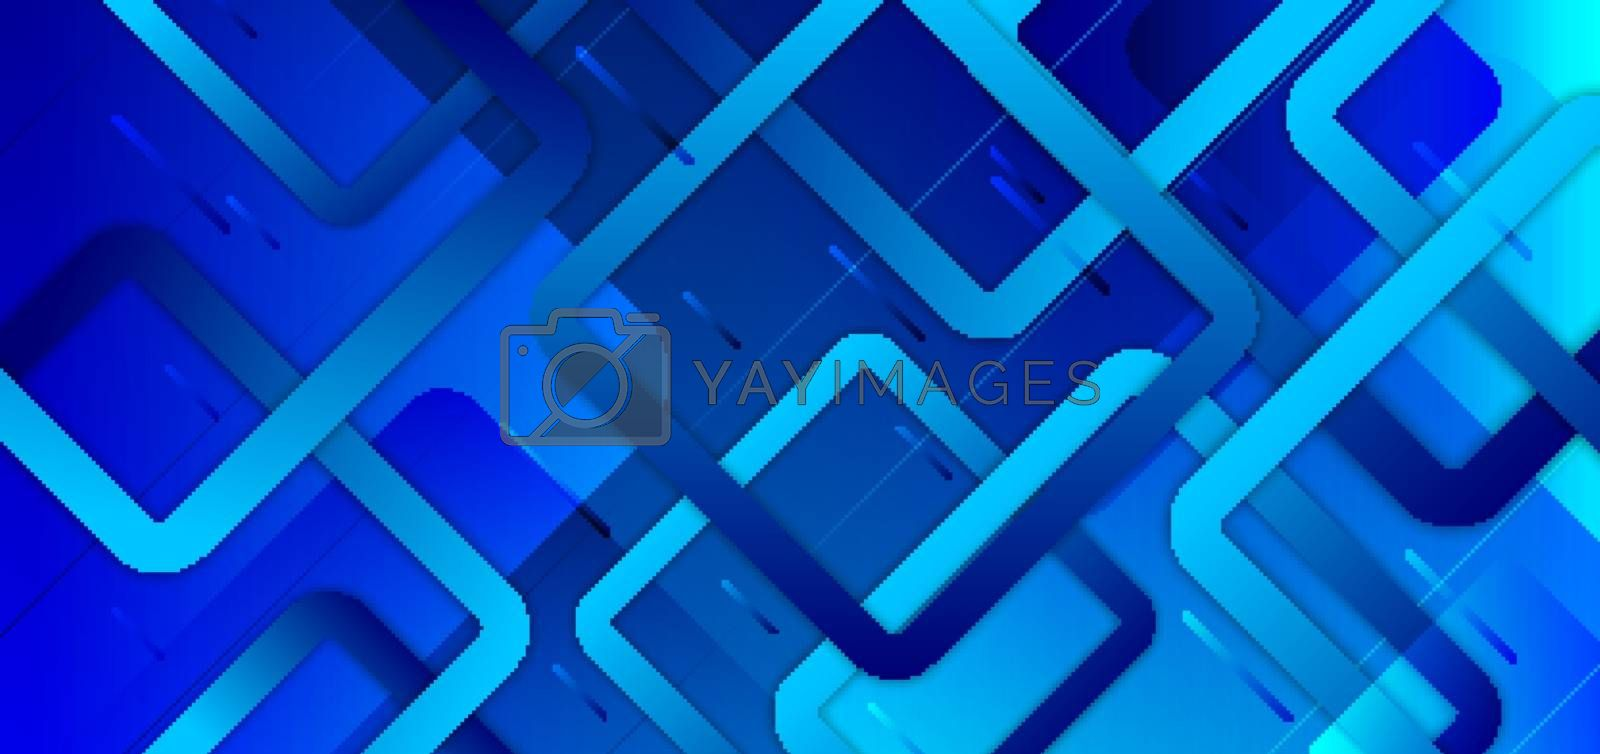 Abstract blue gradient background with geometric squares overlapping creative design technology concept. You can use for banner web, cover brochure, website template, presentation, etc. Vector illustration